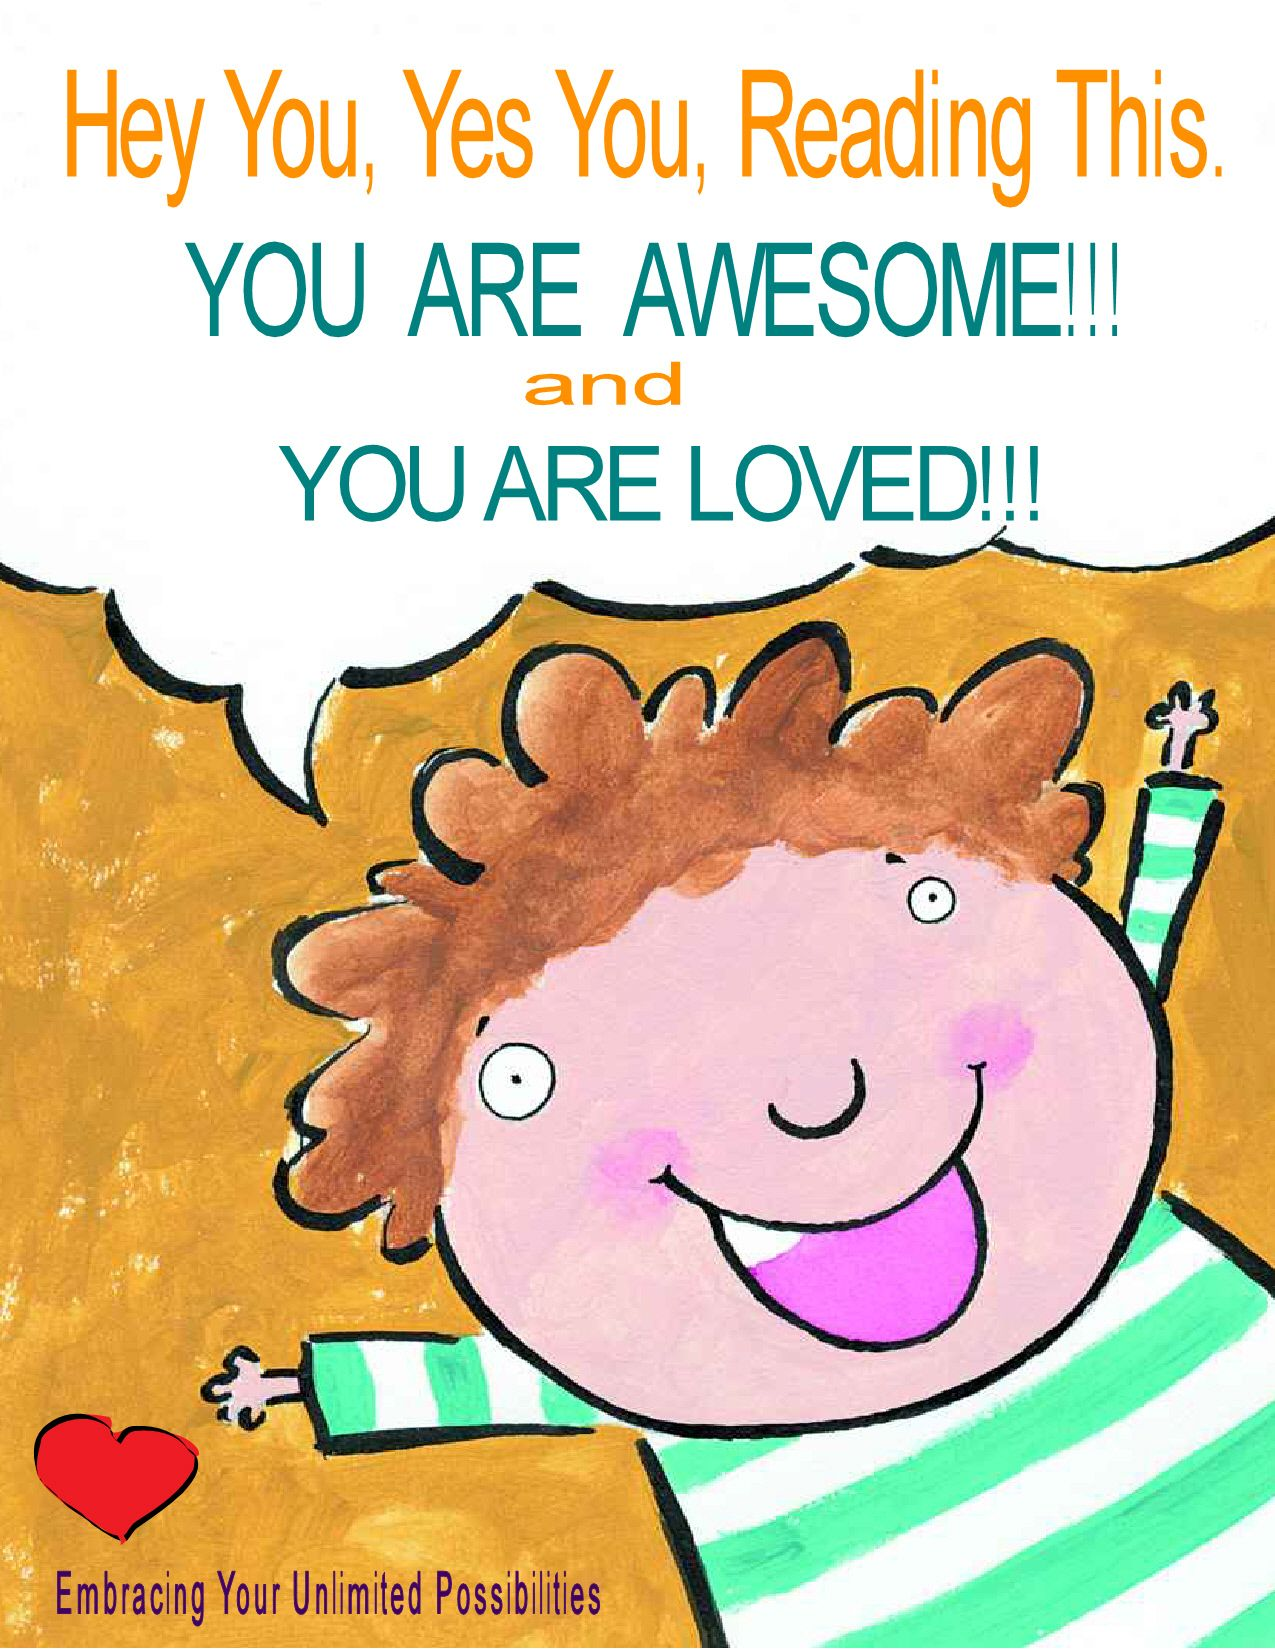 You Are Awesome and You Are Loved!!! Accept Yourself and Love Yourself In Bold and Radical Ways! YOU ARE HERE TO SHINE!